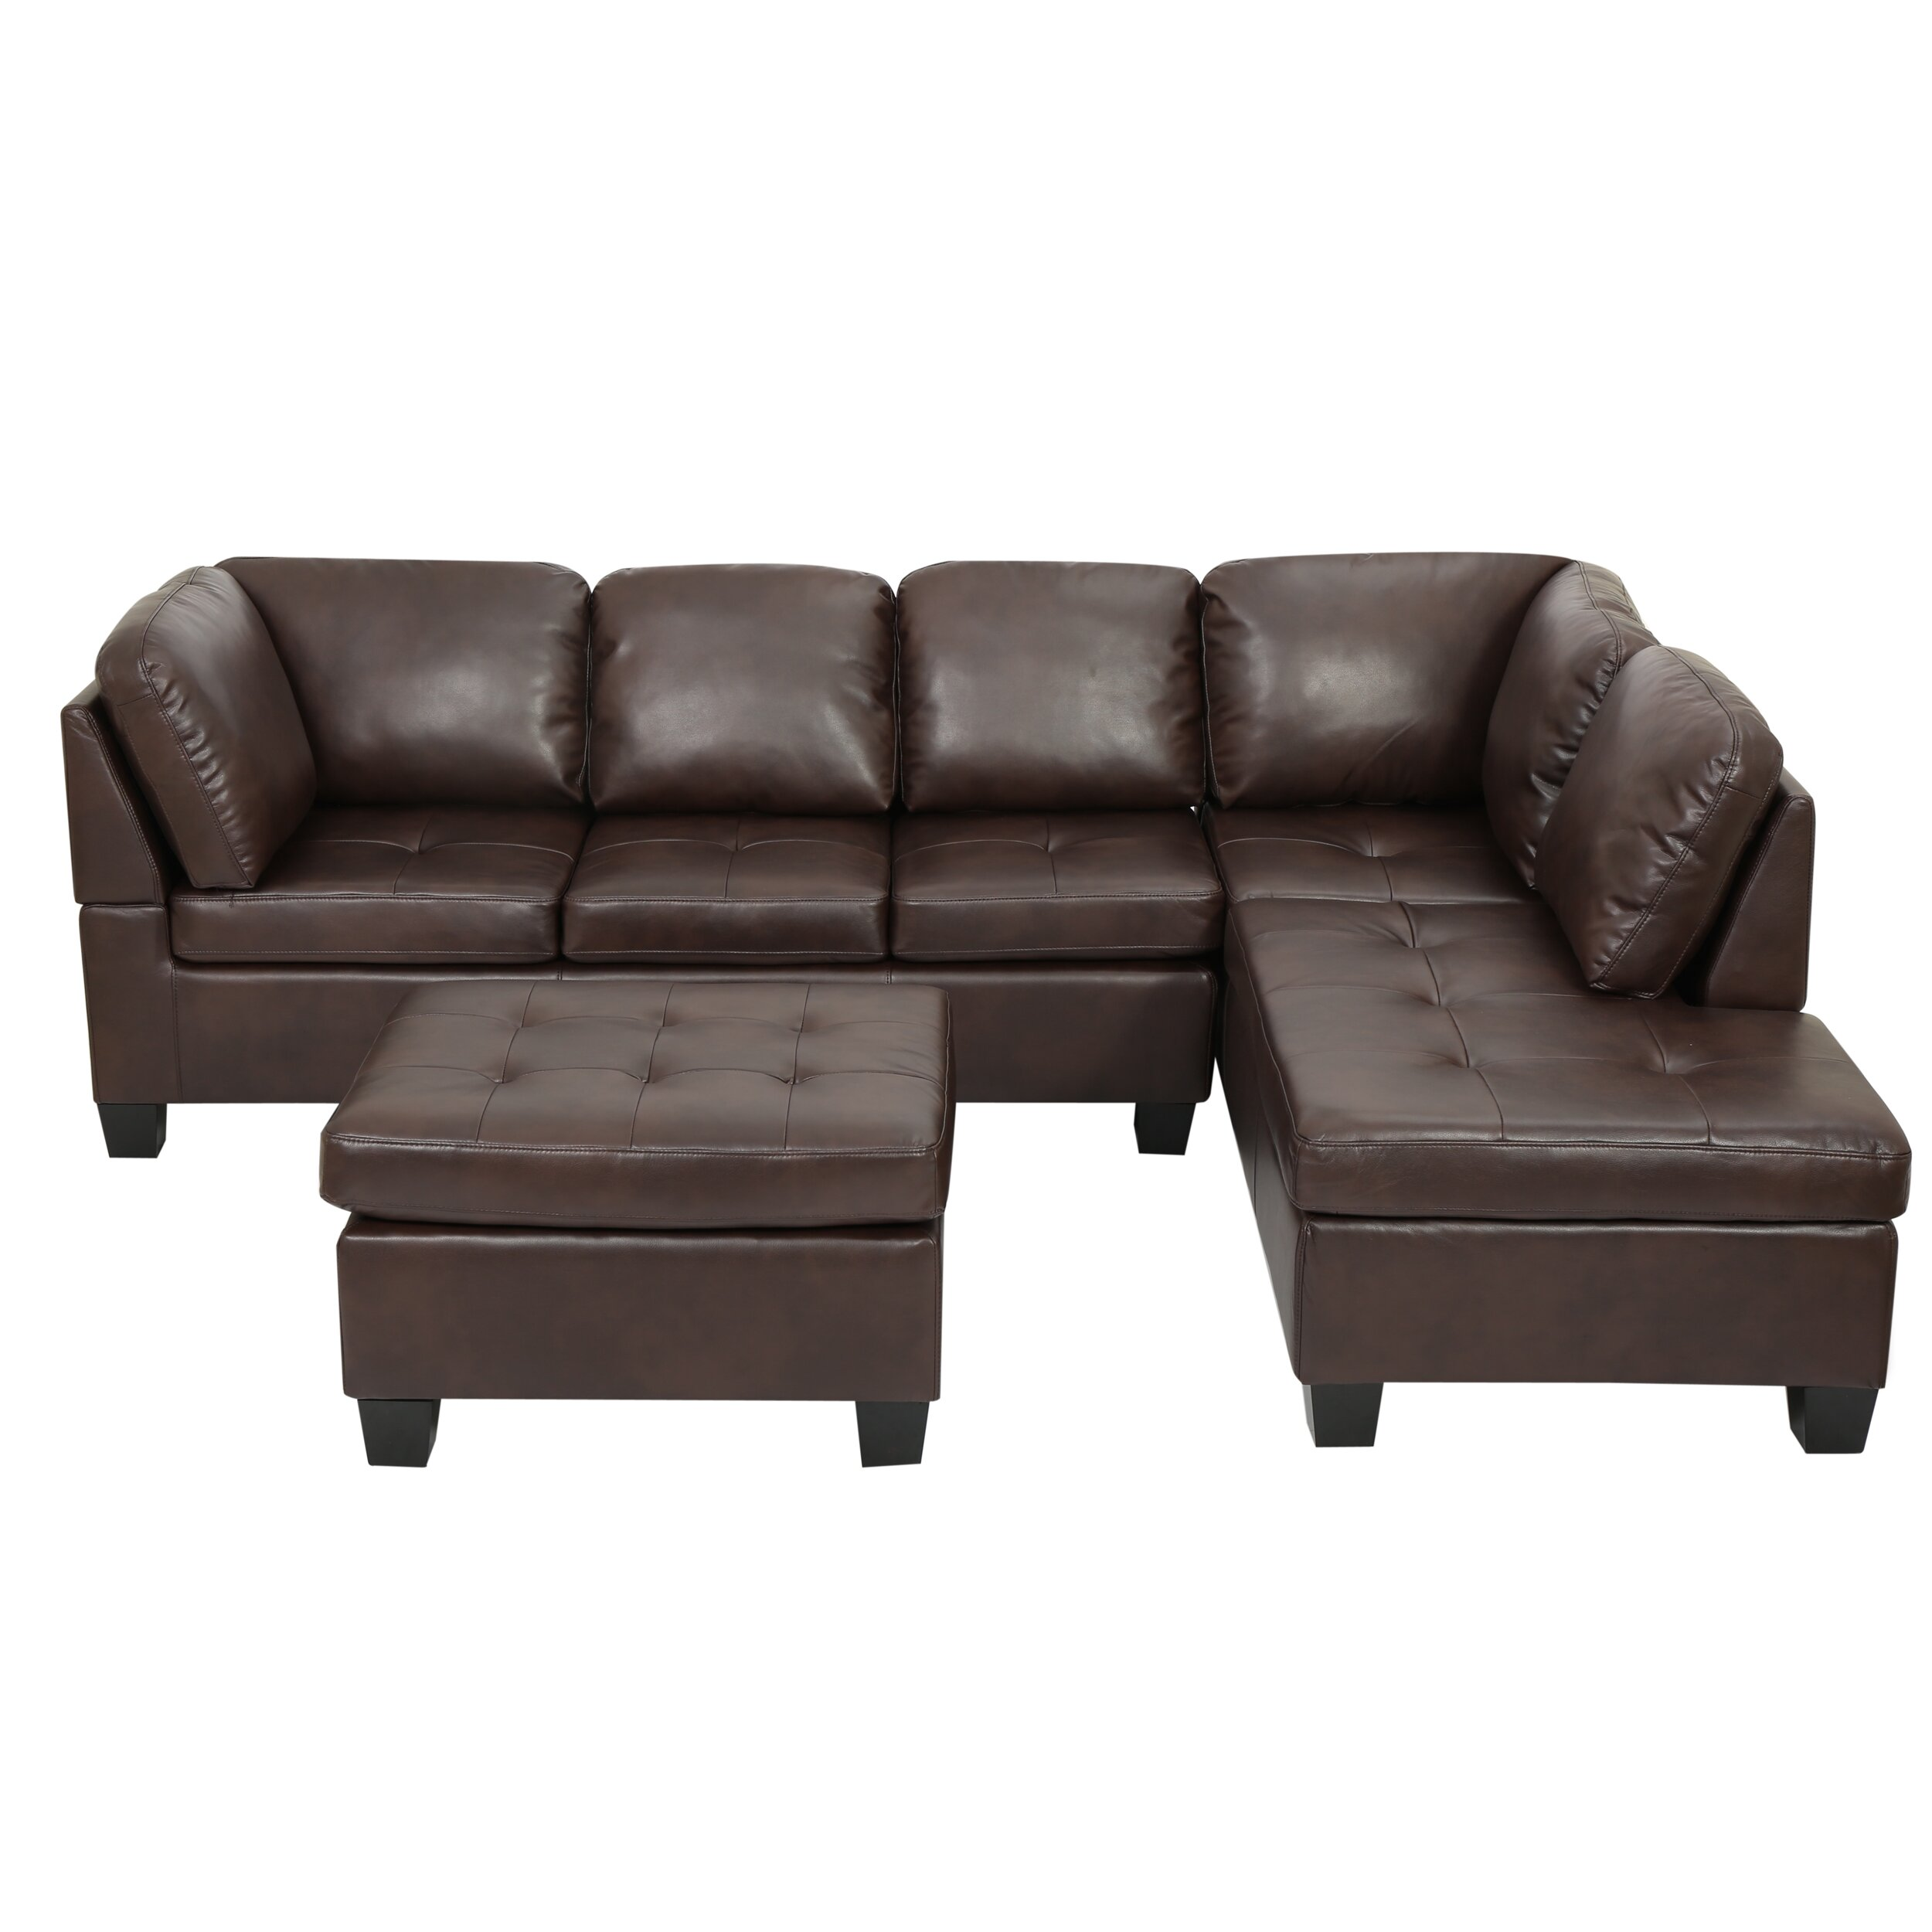 Home loft concepts evan sectional reviews wayfair for Wayfair furniture sectional sofa